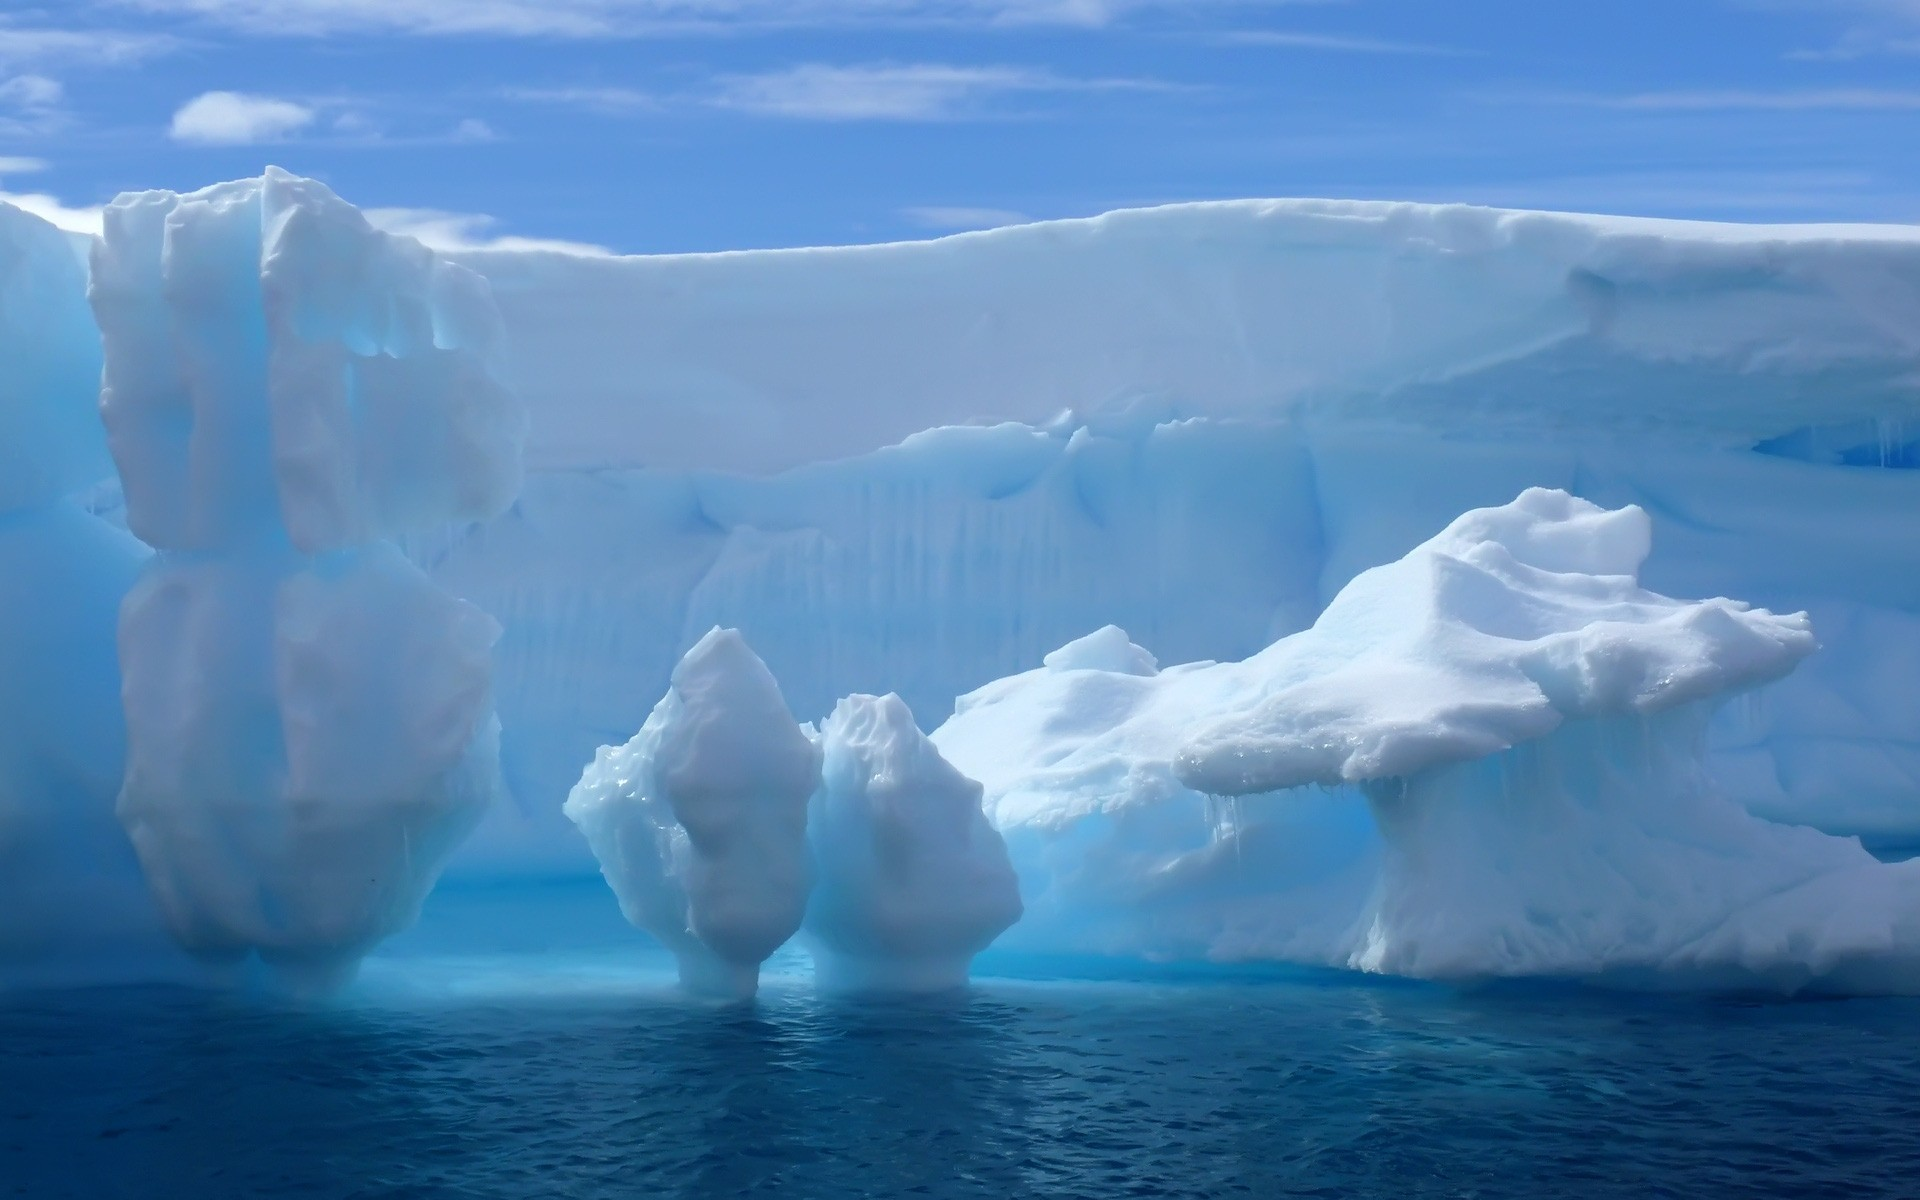 winter iceberg ice melting frosty swimming water snow glacier cold nature global warming climate change greenland outdoors frozen antarctic frost travel glacial